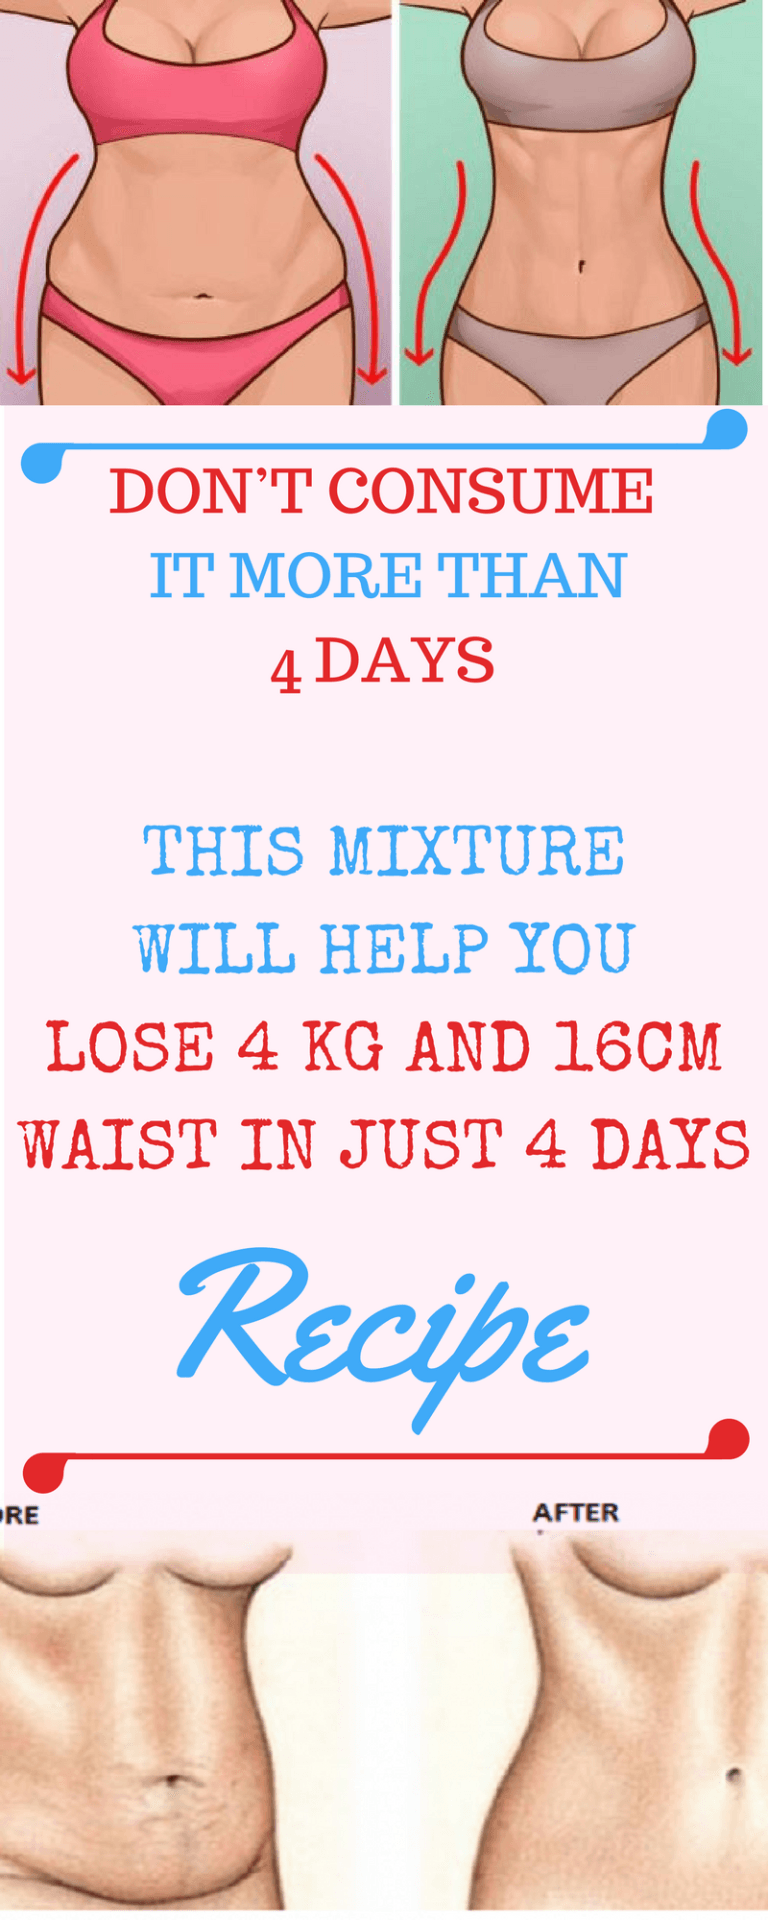 How to lose more than 4 kg in a week using rice 78